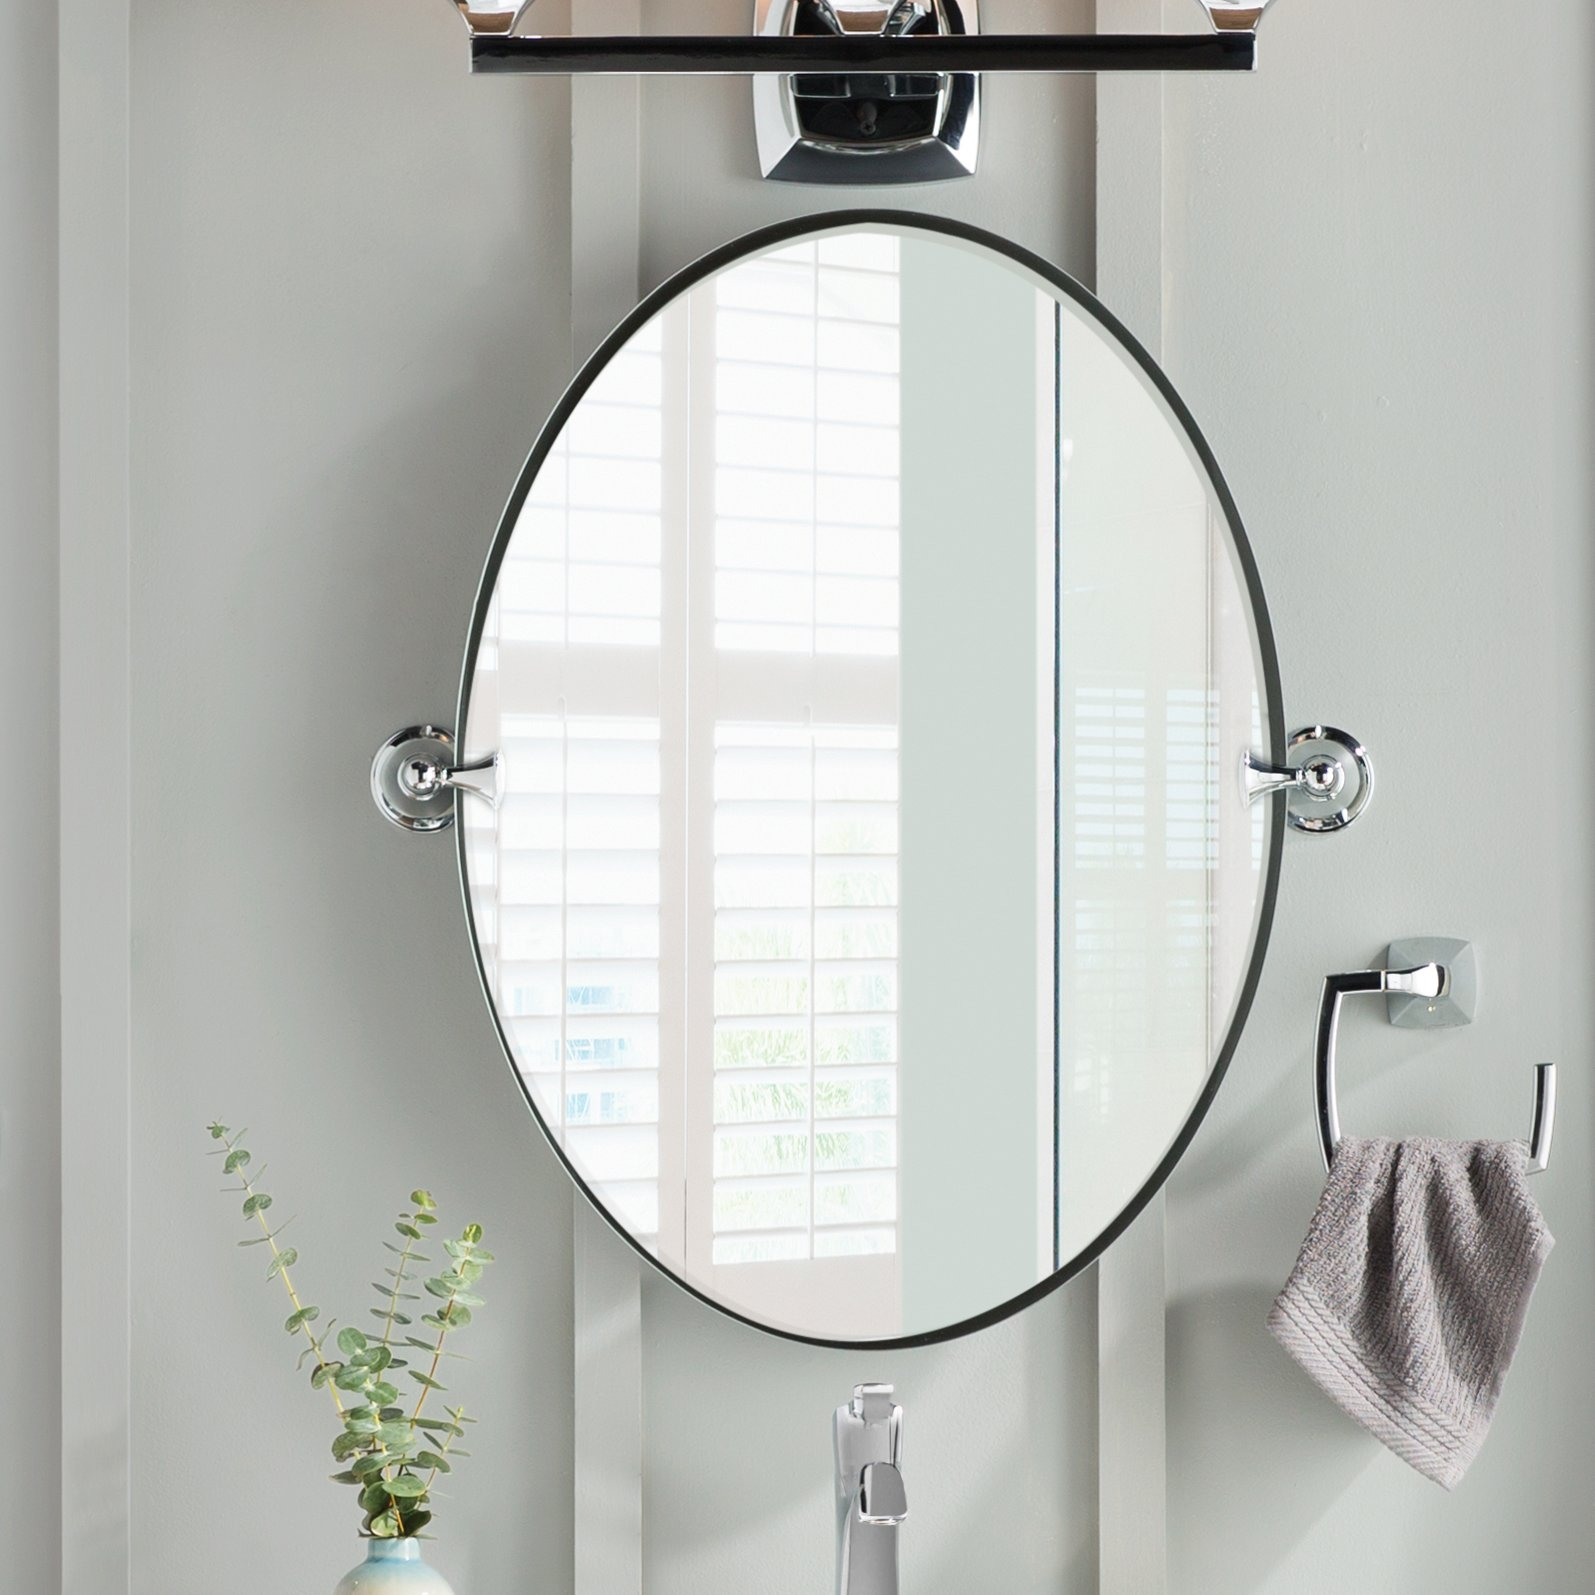 Moen Glenshire Wall Mirror Reviews Wayfair For Odd Shaped Mirrors (Image 6 of 15)